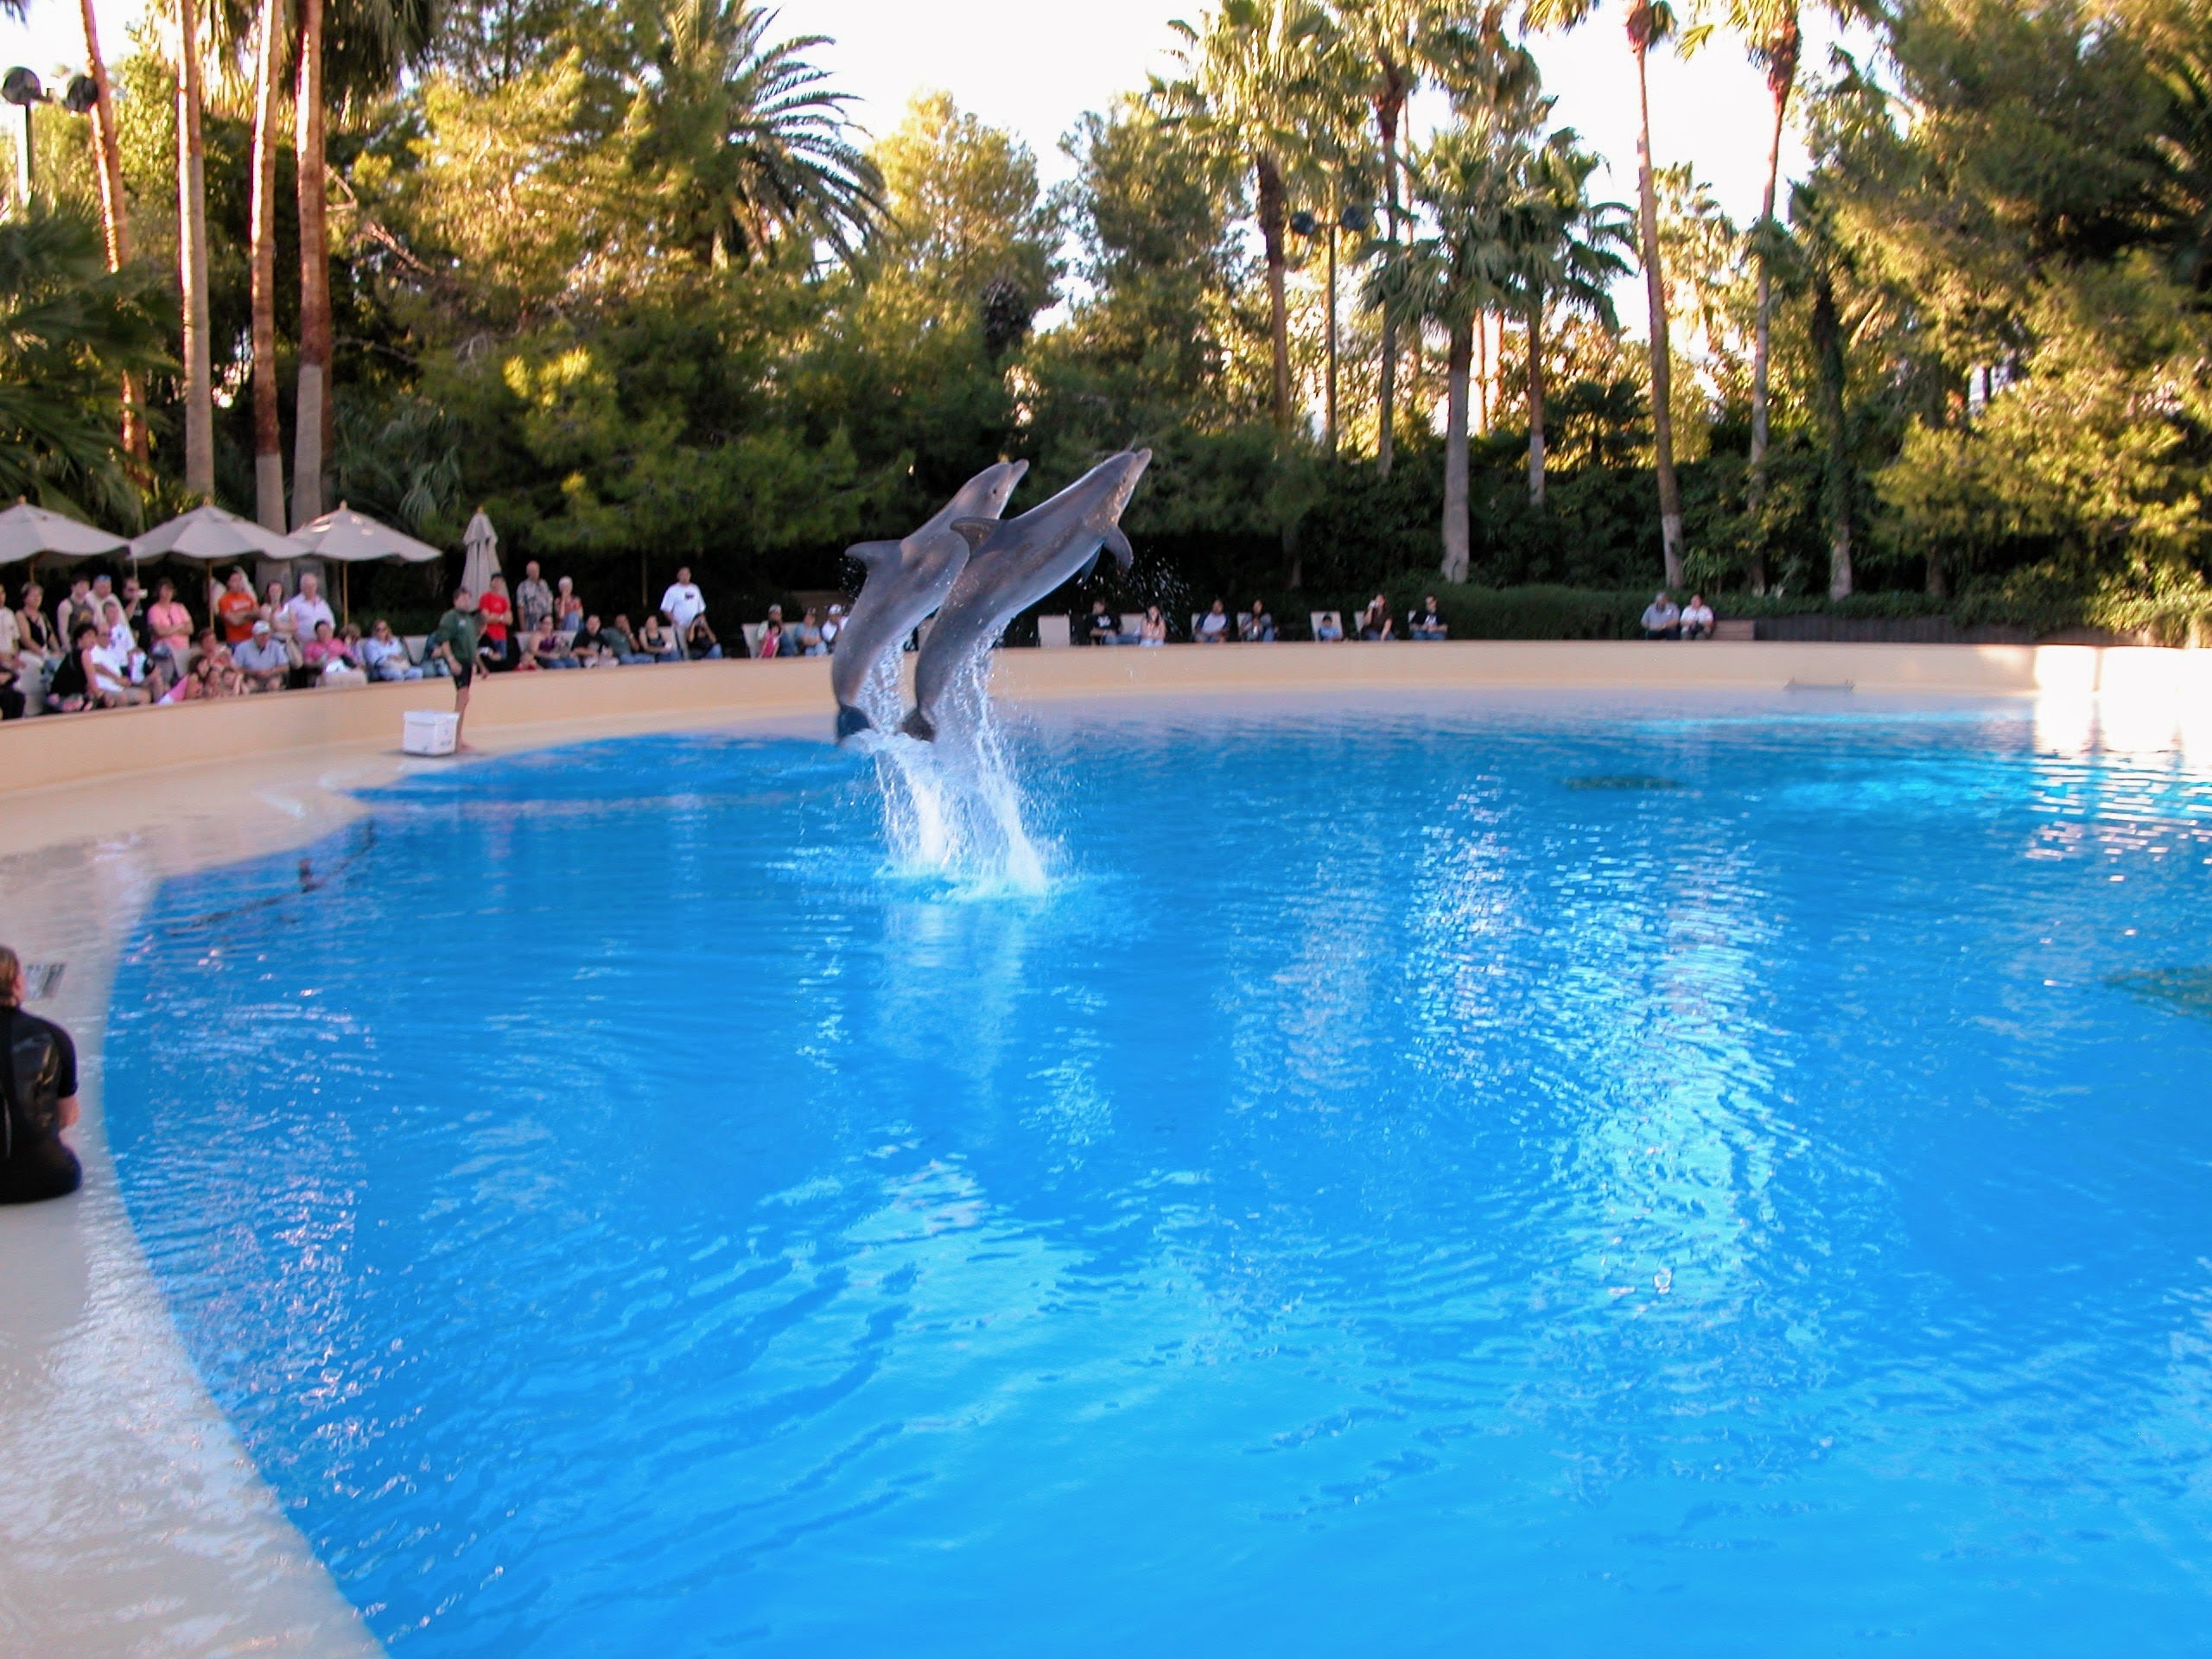 Dolphin Habitat at The Mirage, Las Vegas